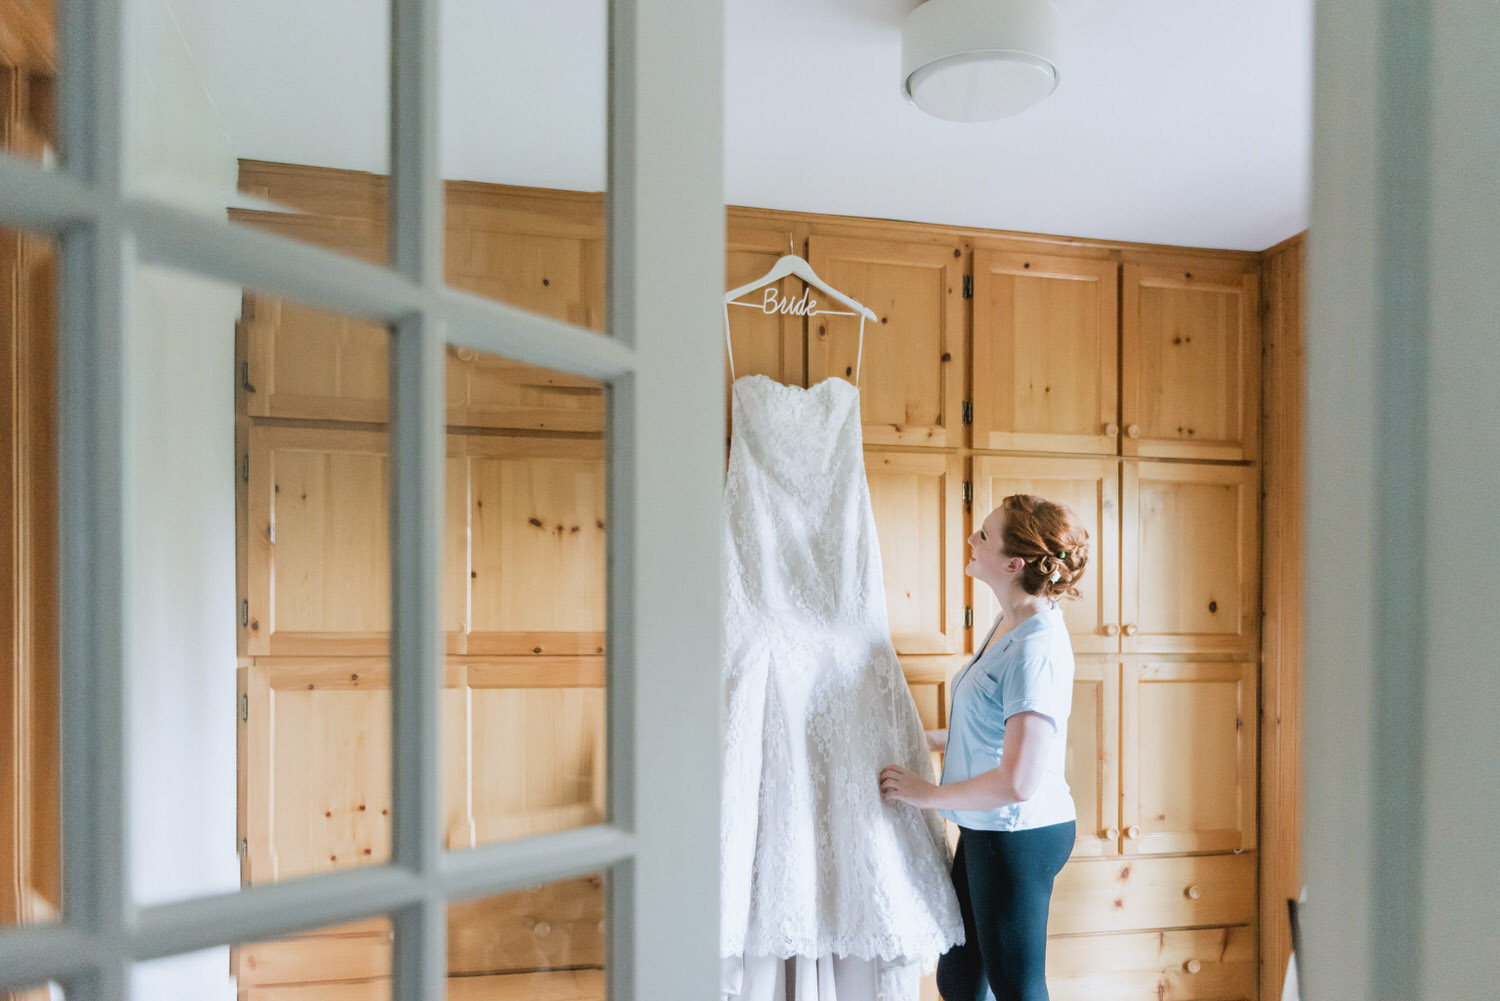 Bride staring at her wedding dress hung on a wall